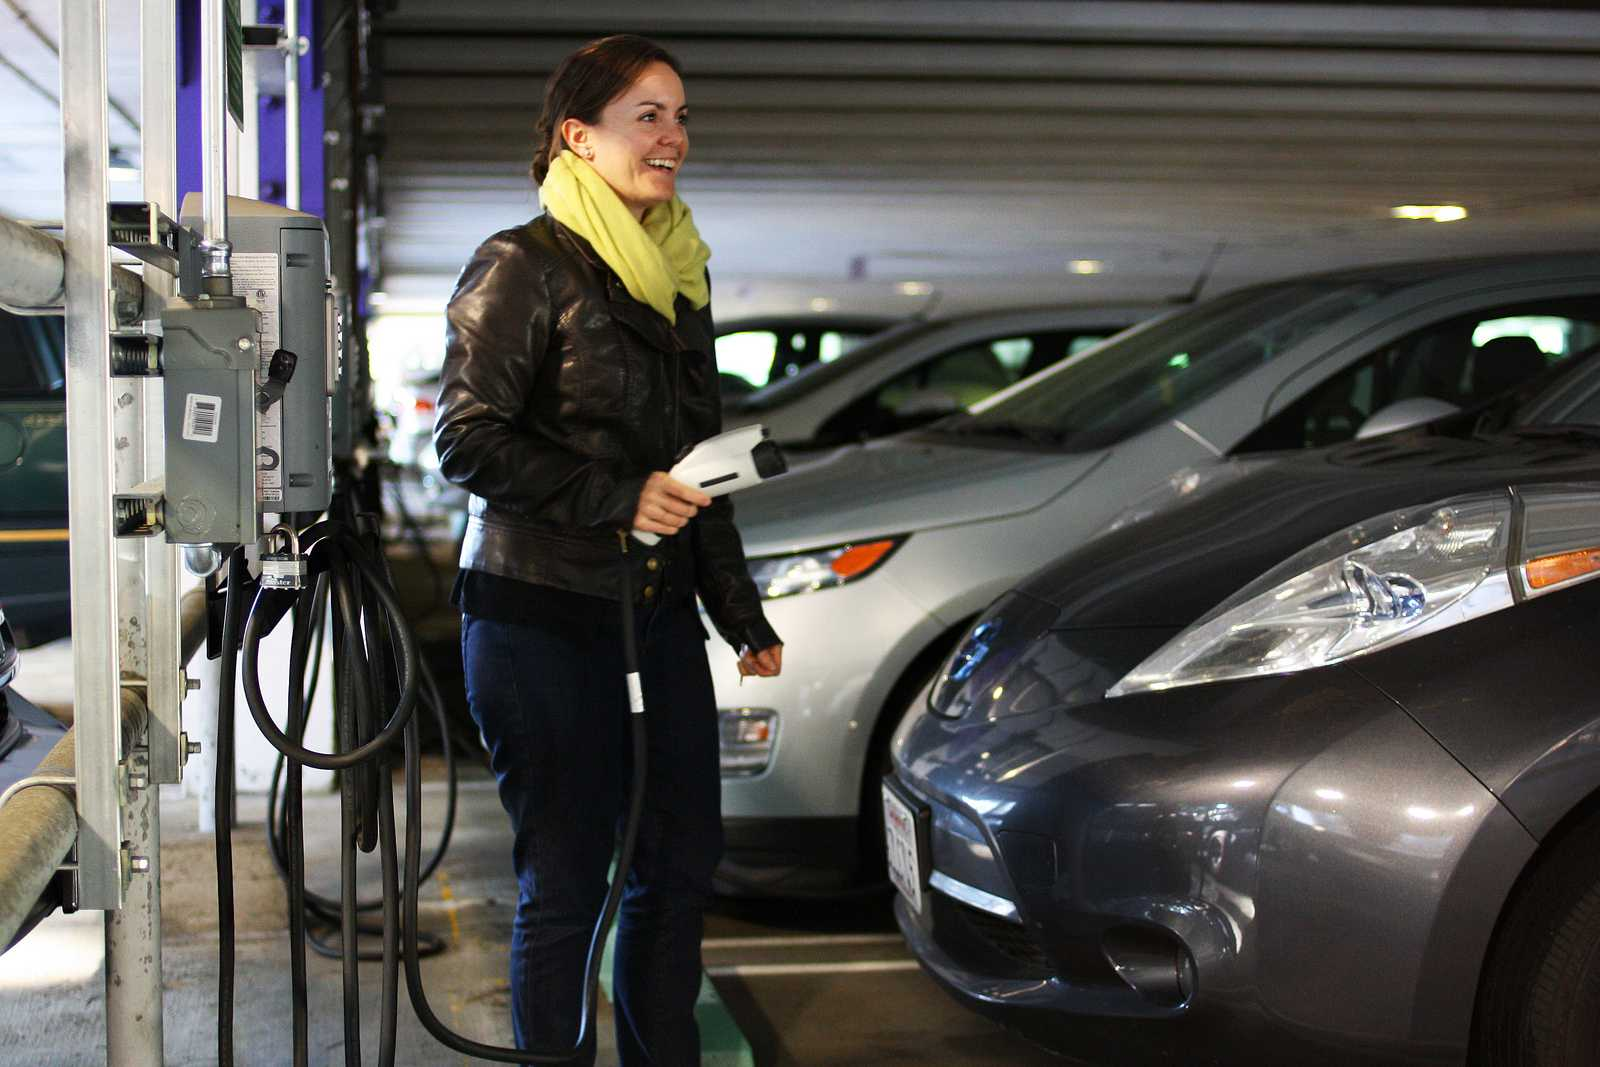 Kinesiology professor Marcia Abbott unplugs her car from the free electric charging stations on the first floor of the parking lot, located near the elevator Oct. 10, 2013. Photo By Tony Santos / Xpress